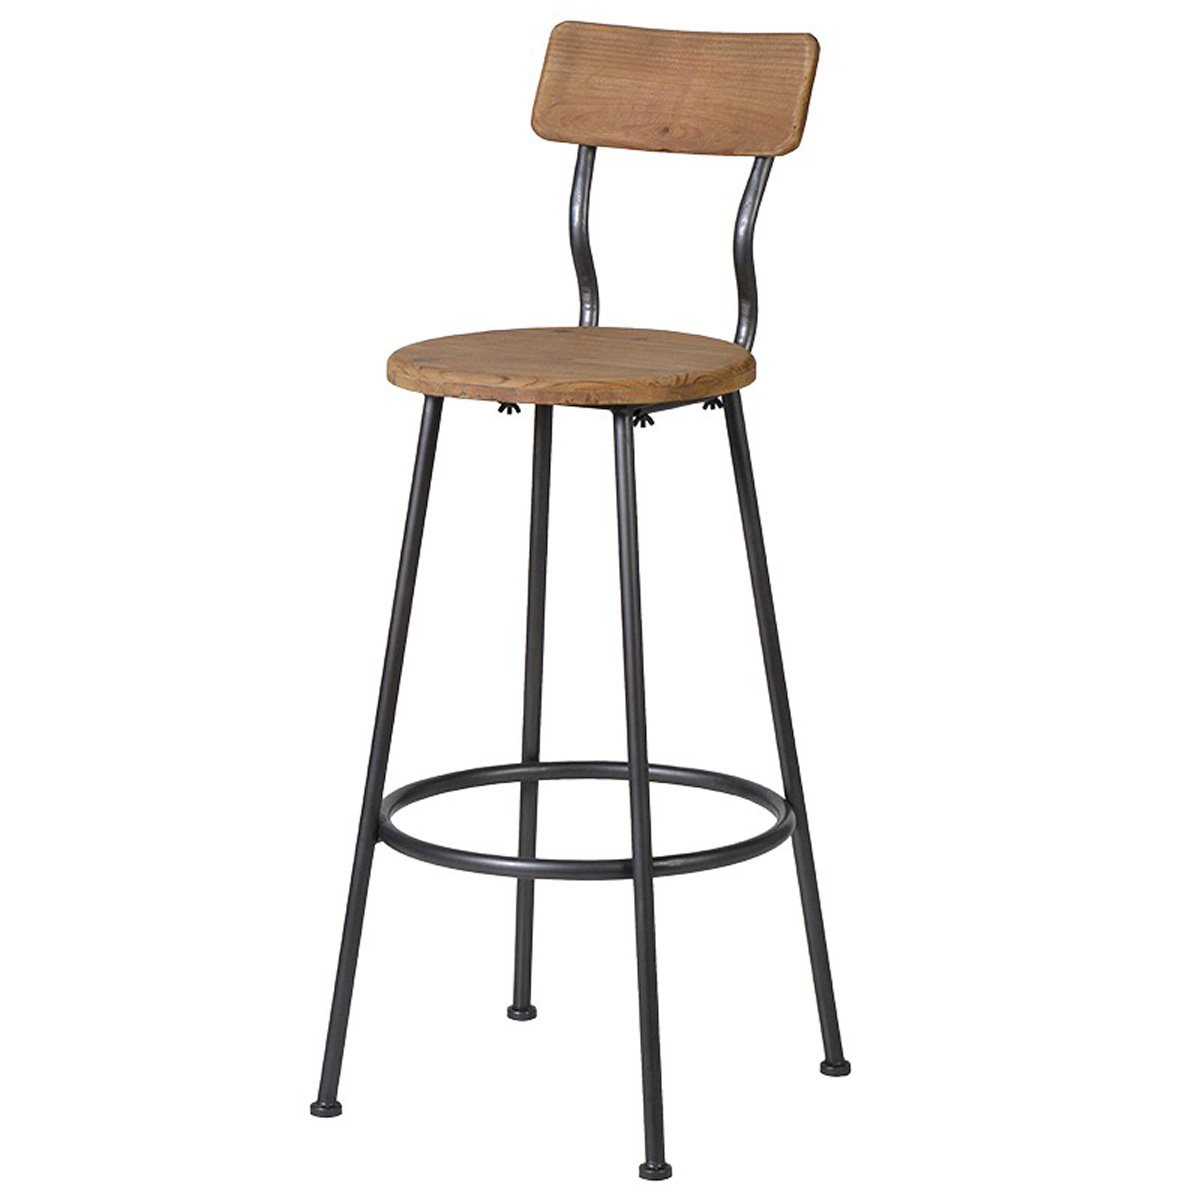 Astounding Vintage Style Wood Grey Metal Bar Stool Caraccident5 Cool Chair Designs And Ideas Caraccident5Info